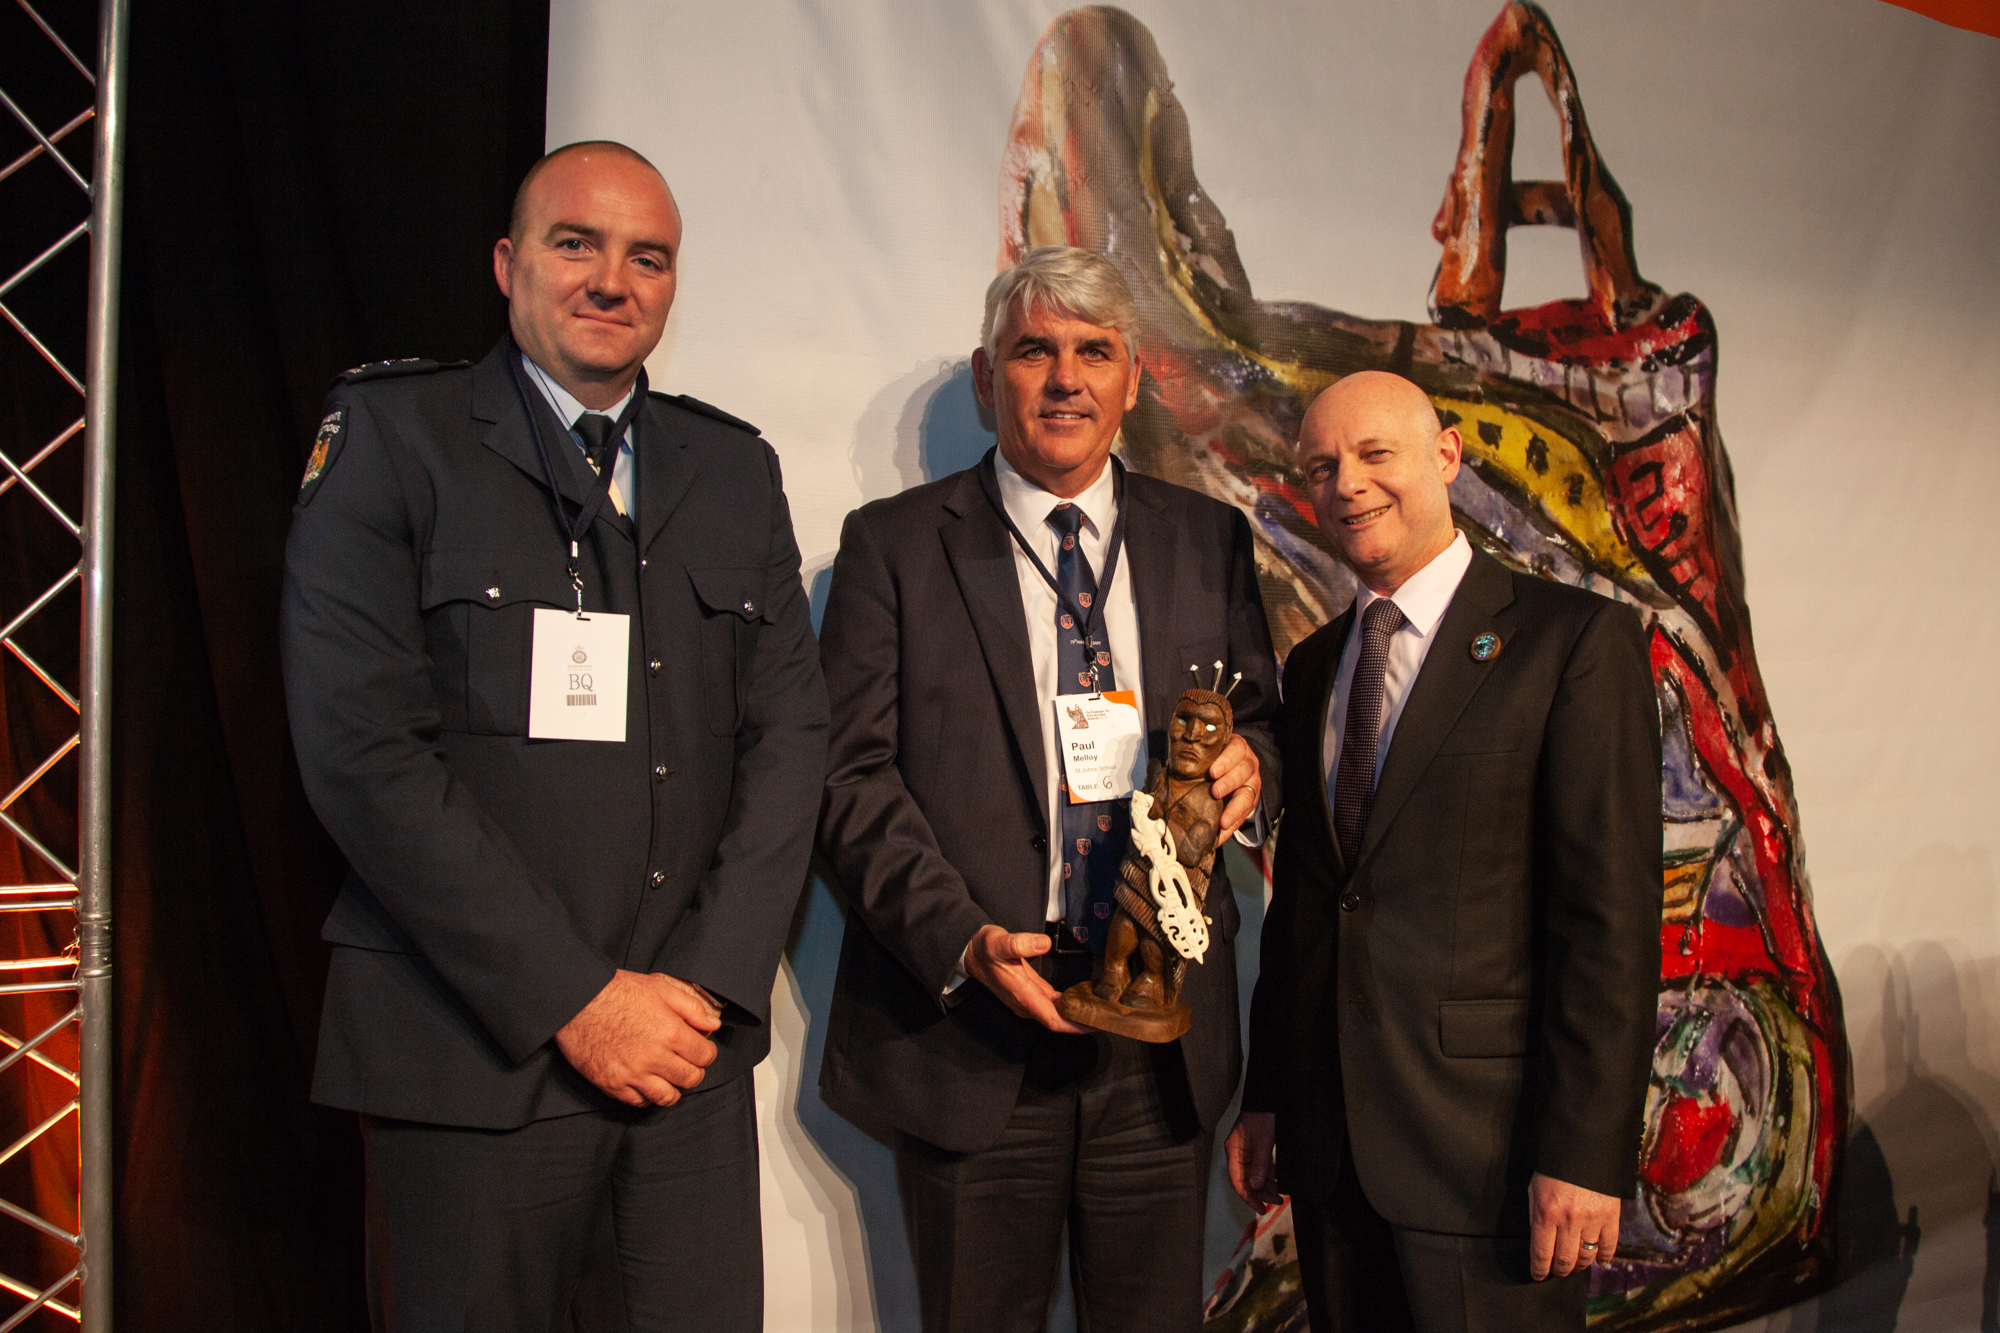 George Massingham, Paul Melloy and Ray Smith, CEO, Department of Corrections Photo: Vanessa Rushton Photography